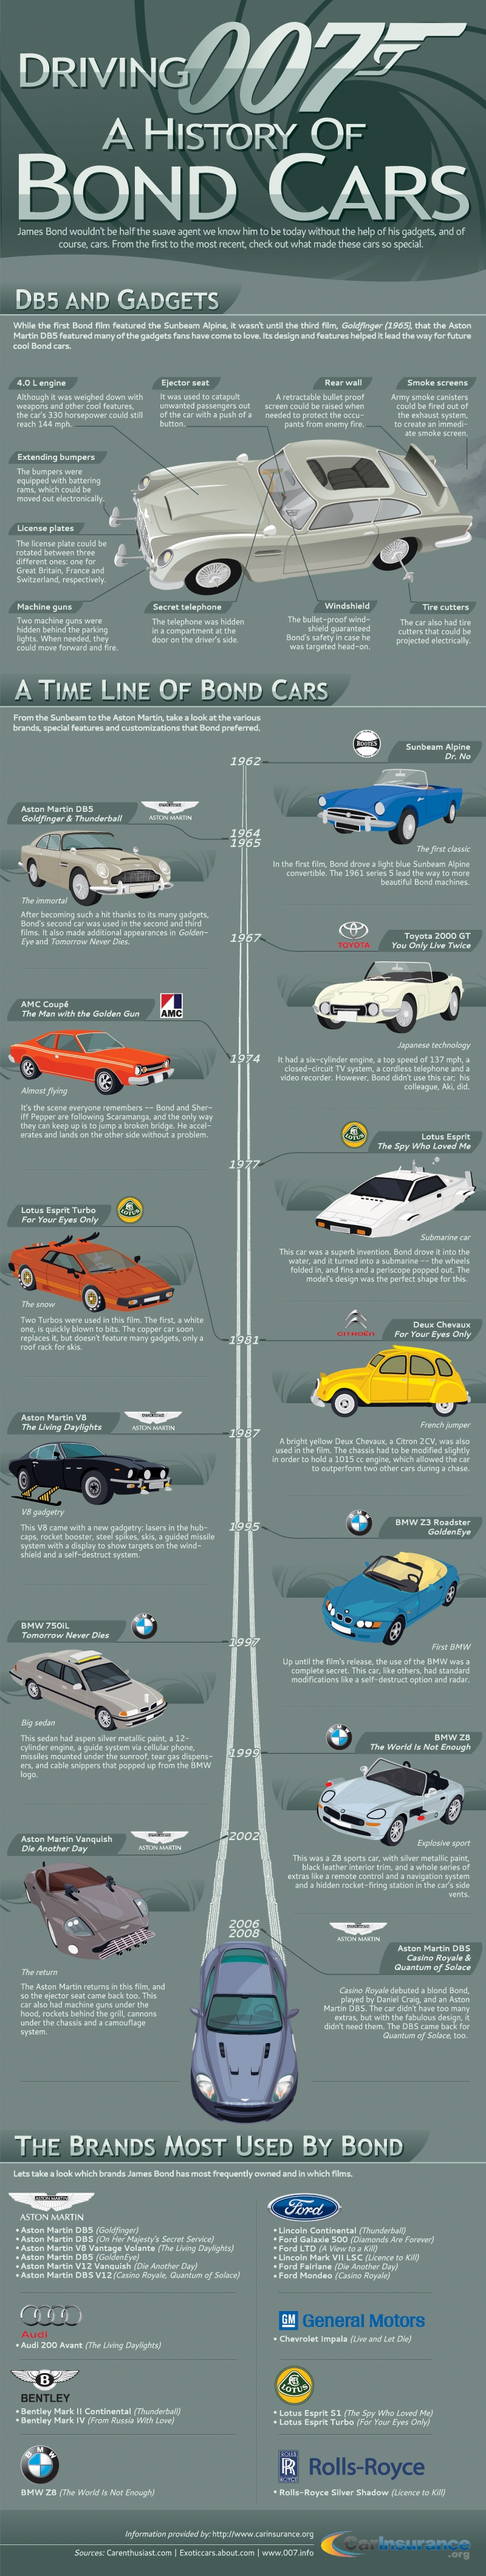 Driving 007: A History of Bond Cars by CarInsurance.org